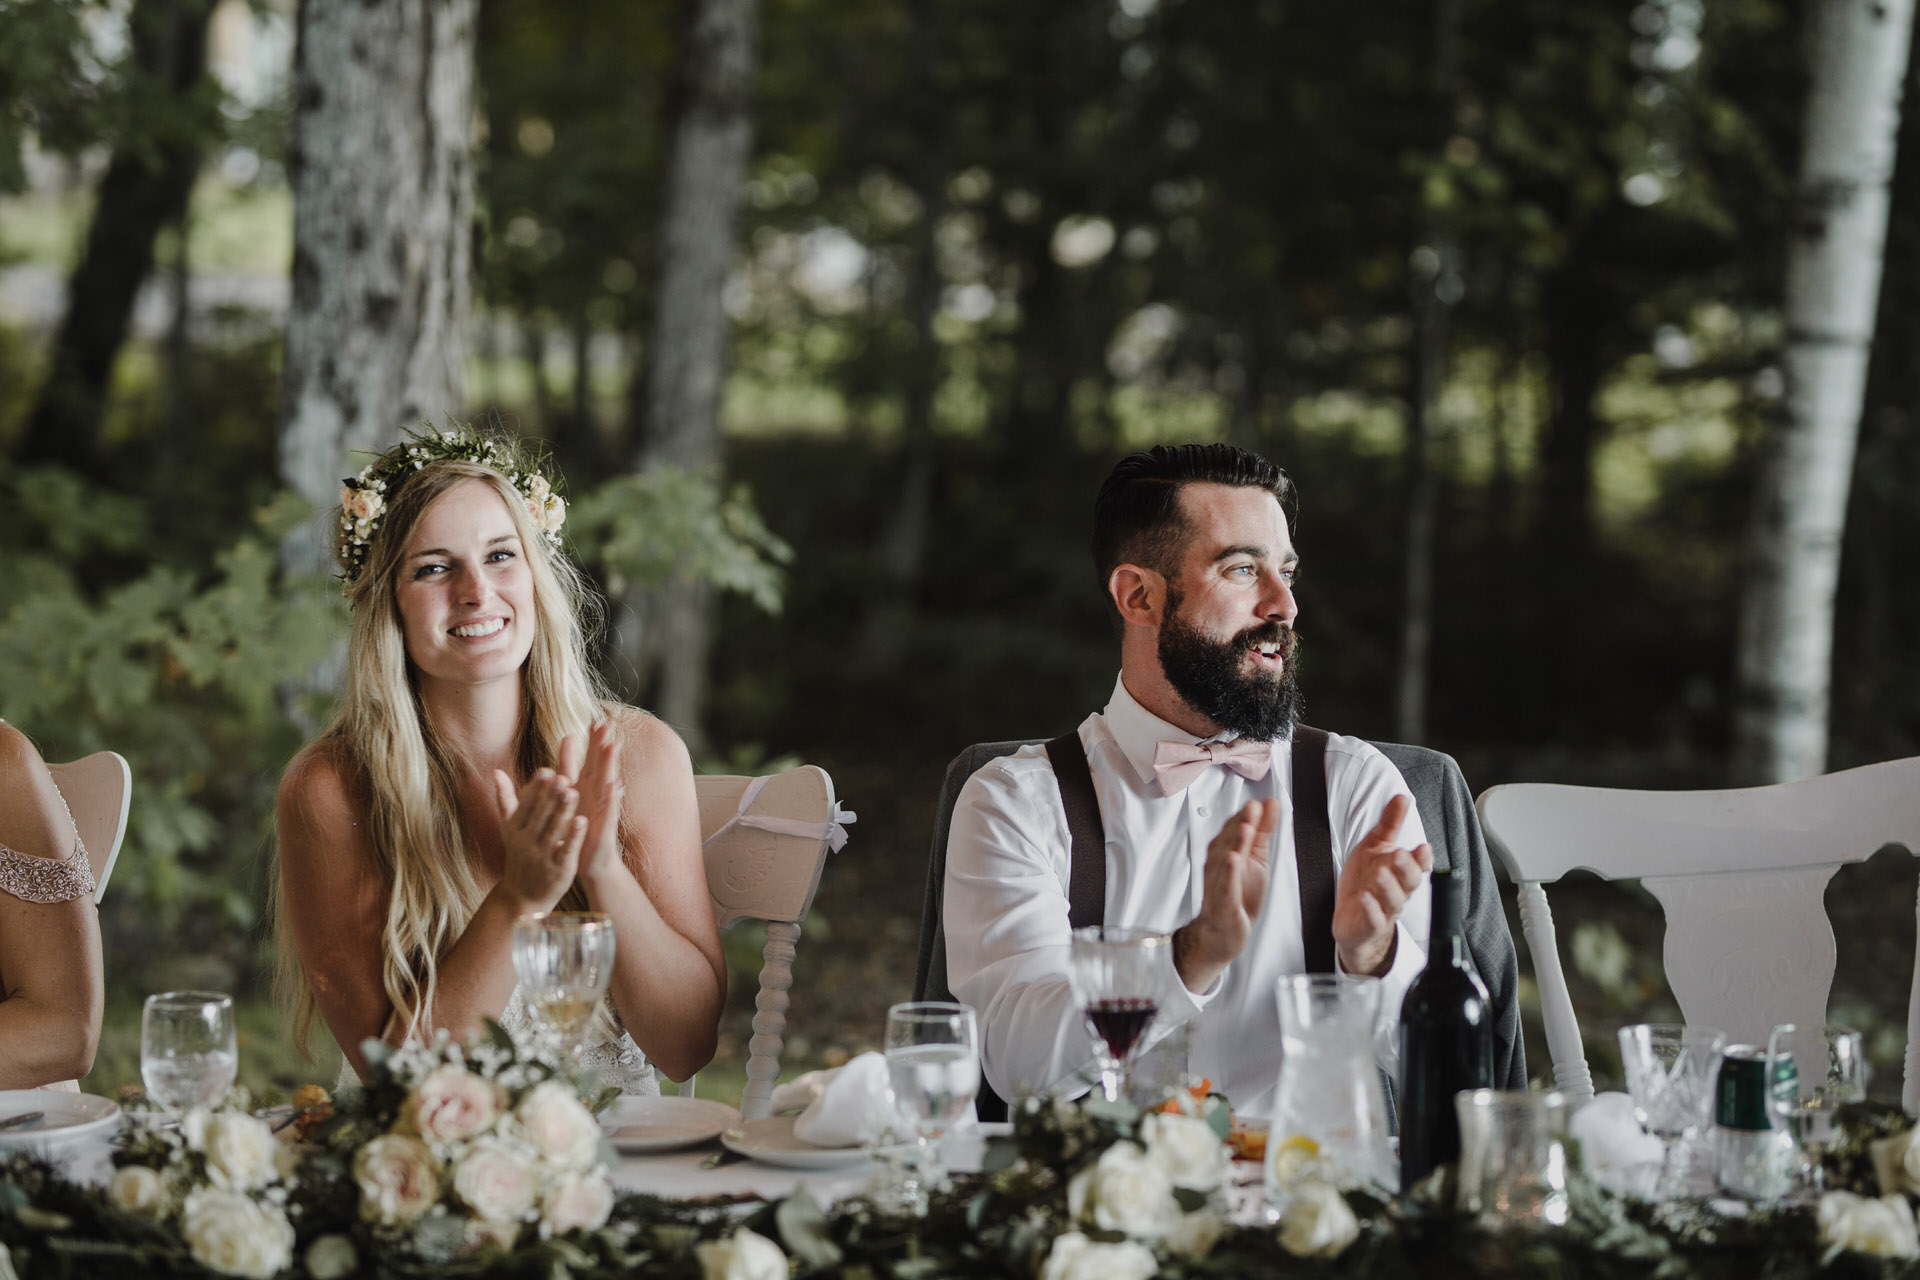 Muskoka Wedding - clapping